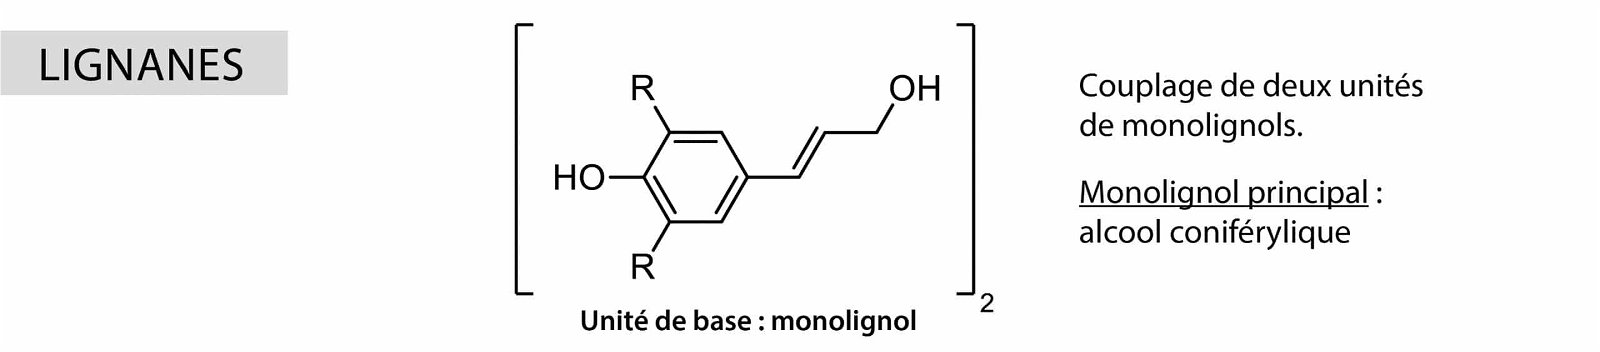 Lignanes Nutrixeal Info